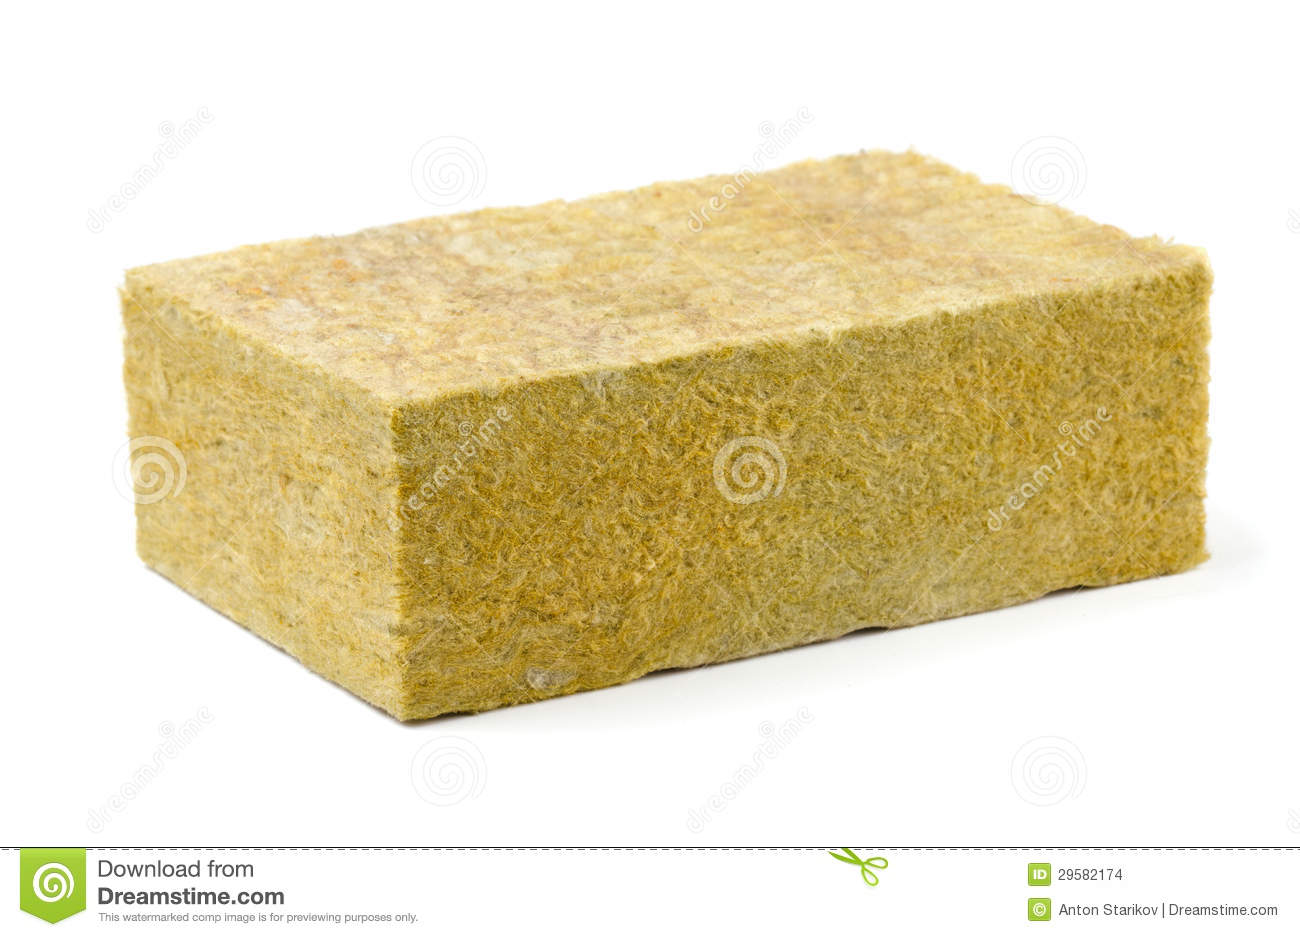 Fiberglass insulation stock images image 29582174 for Cost of mineral wool vs fiberglass insulation